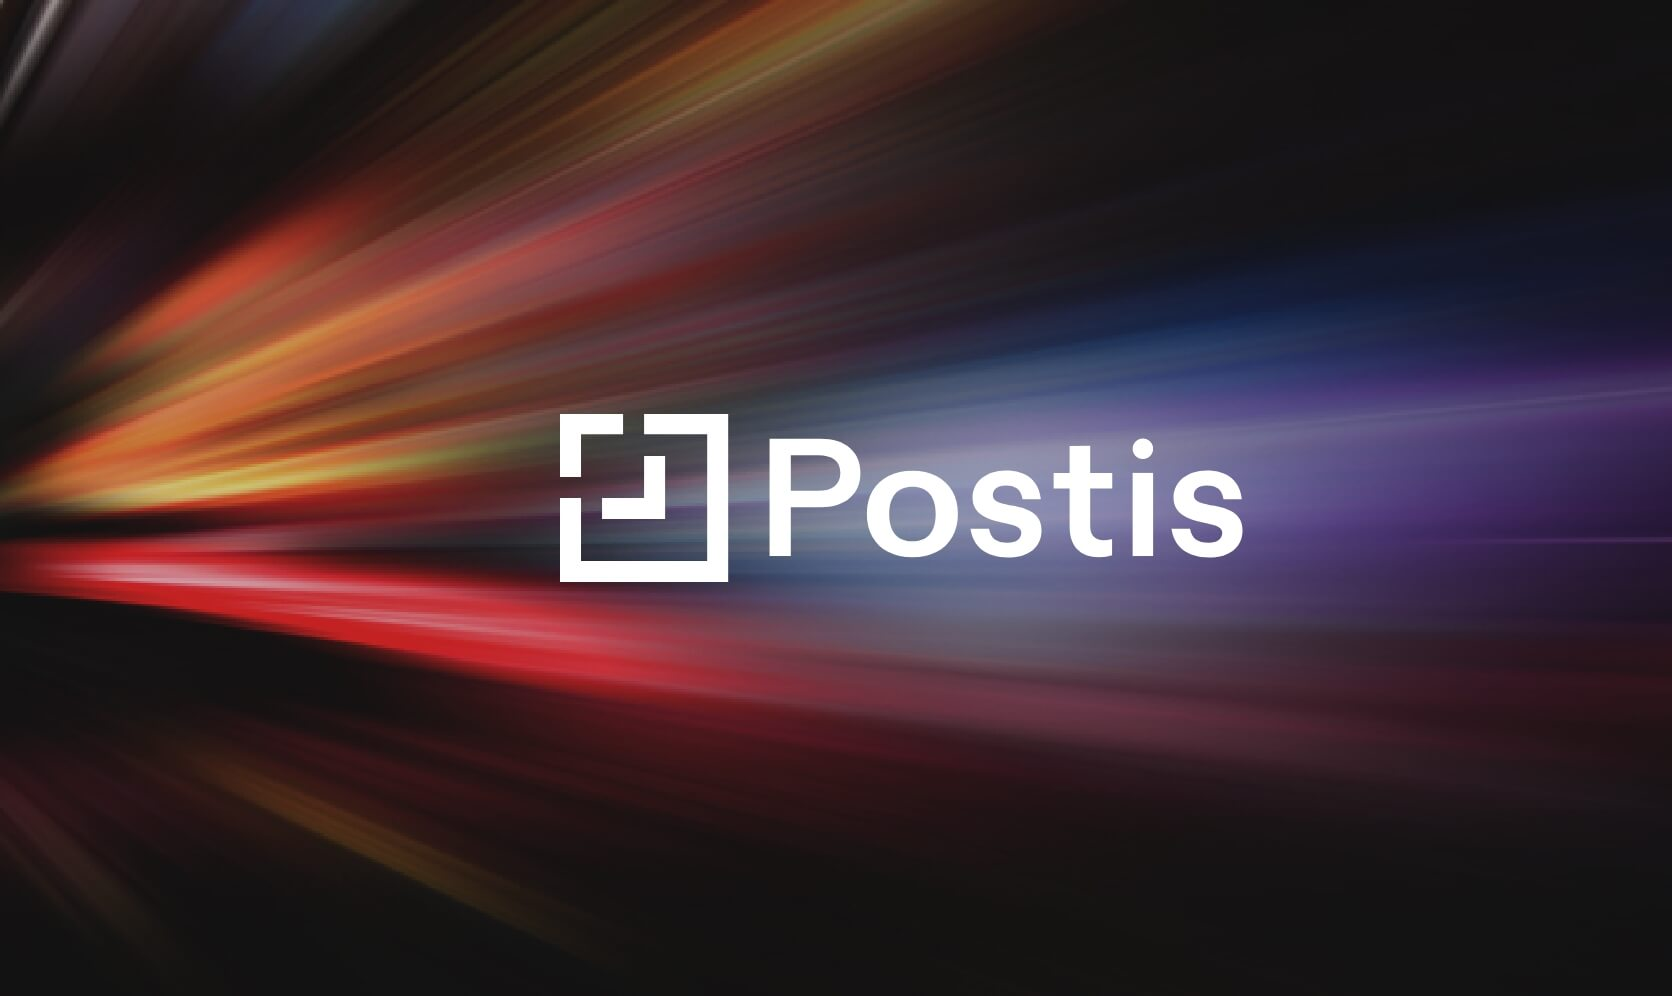 postis logo on a colorful abstract background